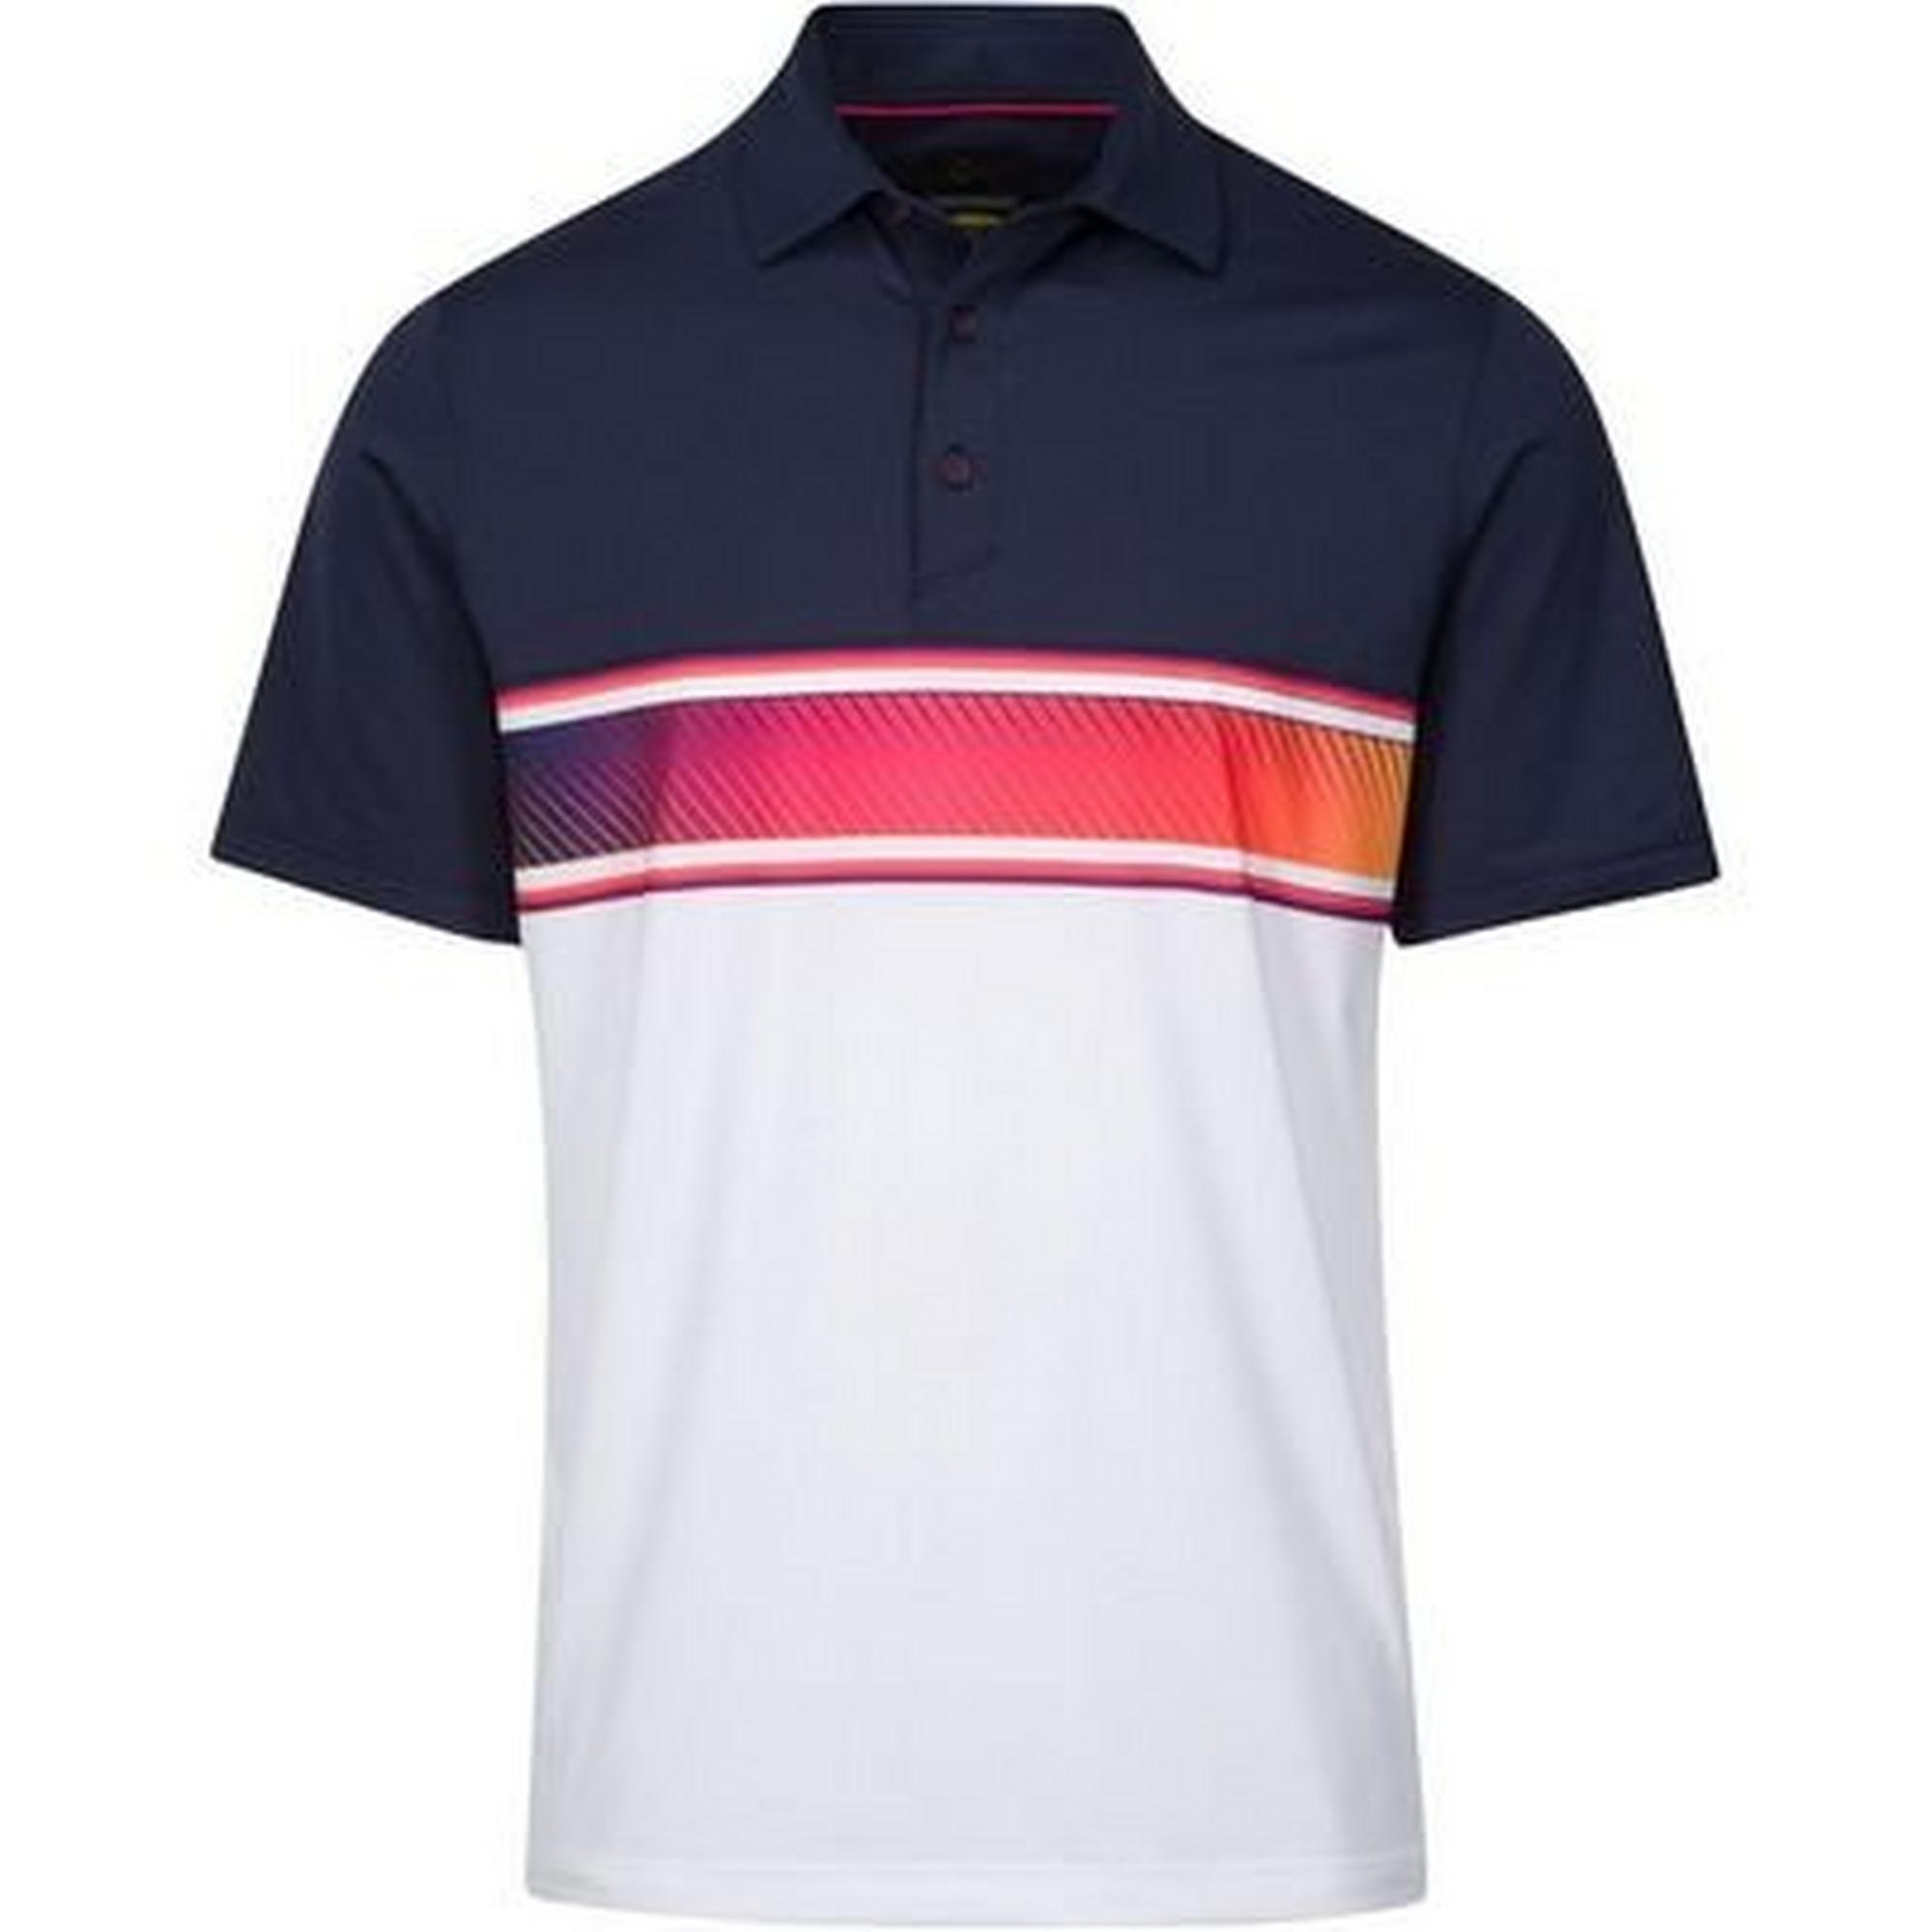 Men's Equinox Short Sleeve Polo